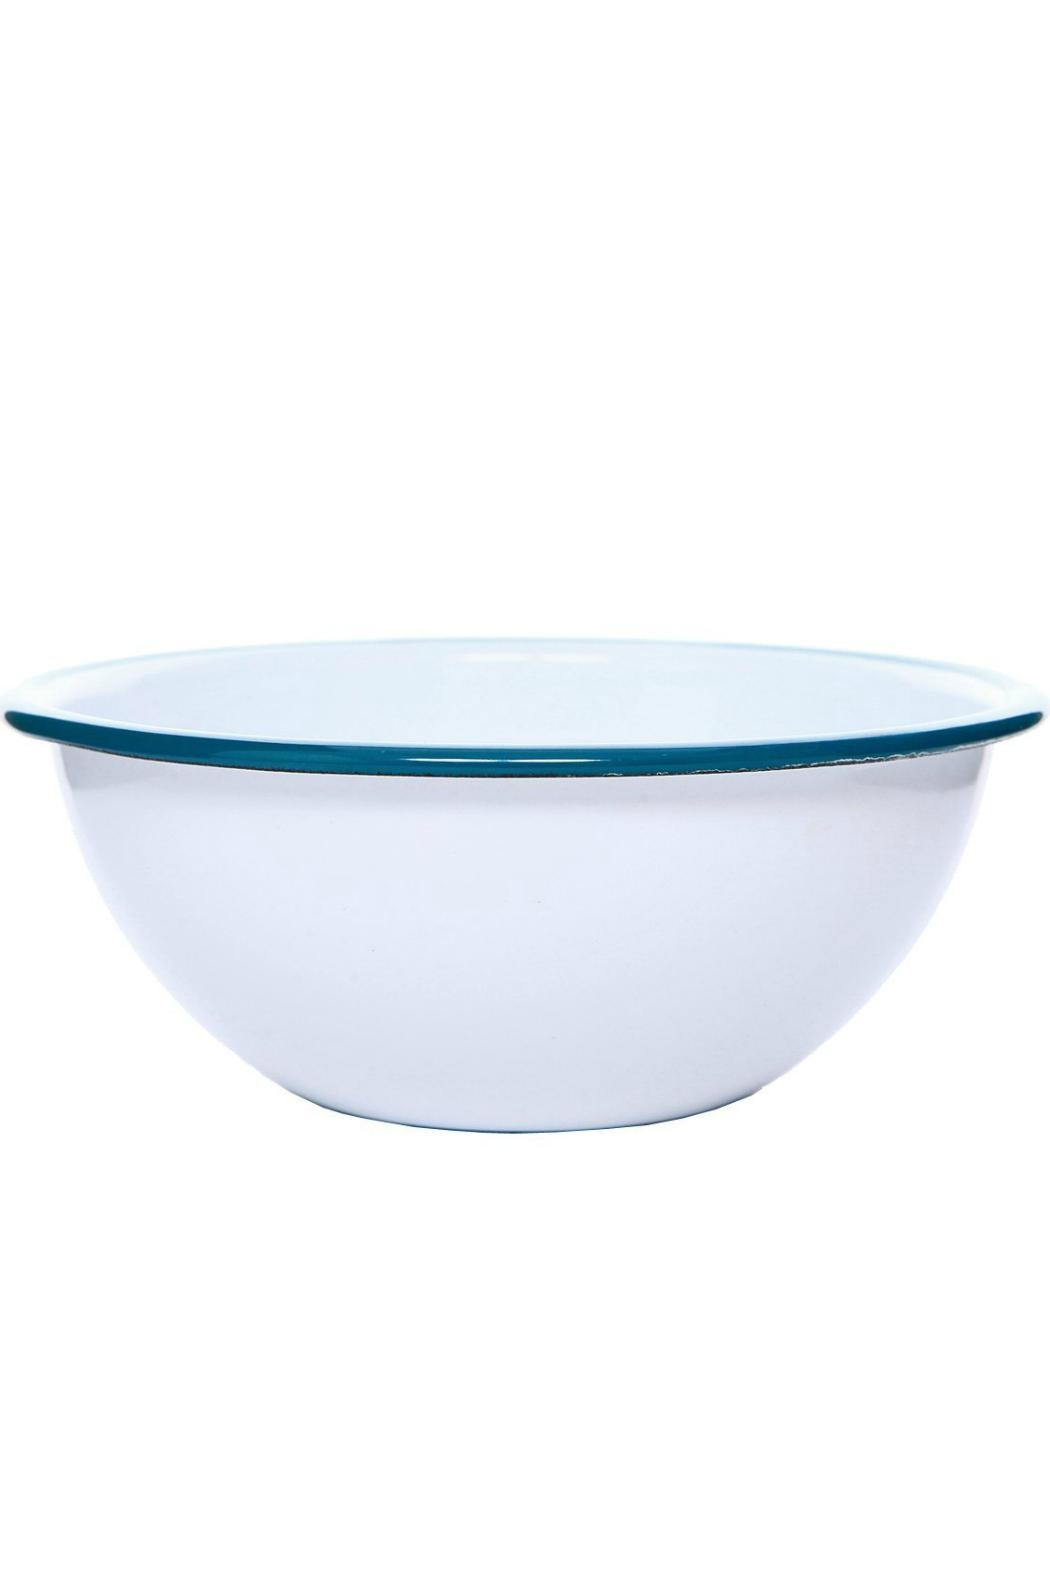 Crow Canyon Enamel Cereal Bowl - Main Image